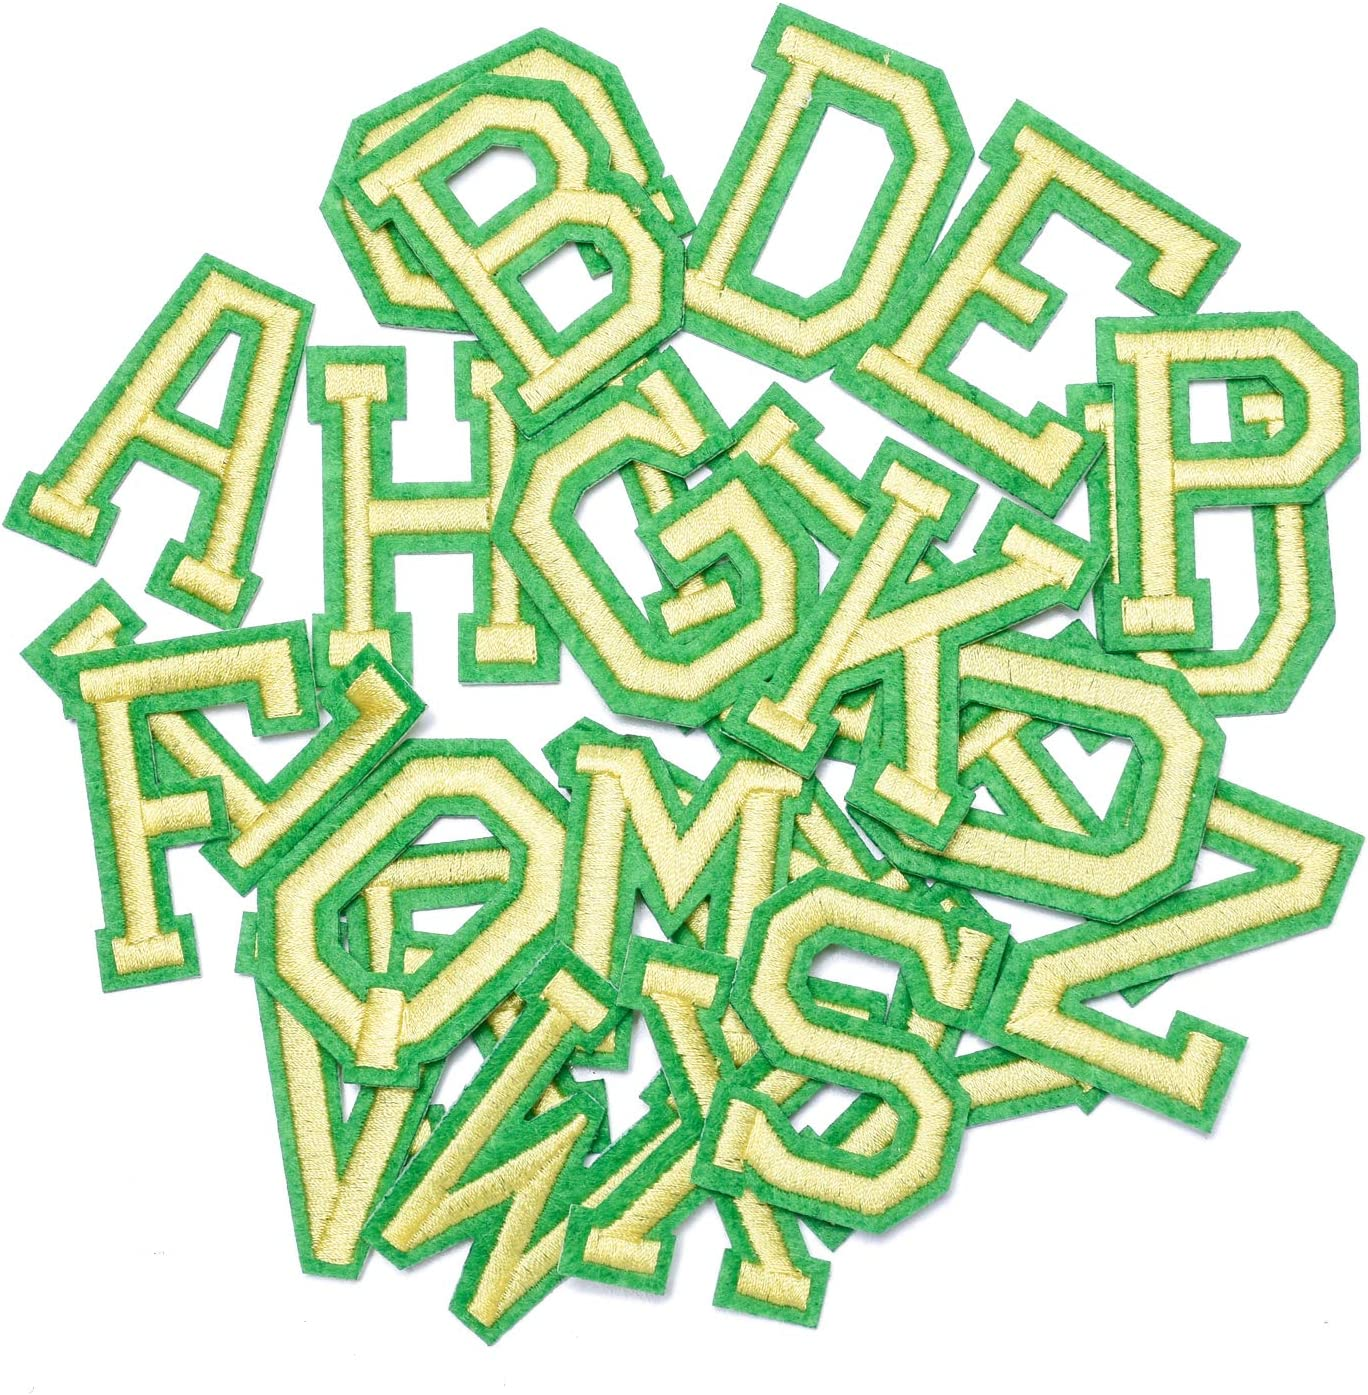 Wlkq 26pcs Green Letter A-Z Patch Assort Embroidered Translated New Shipping Free Shipping Accessories